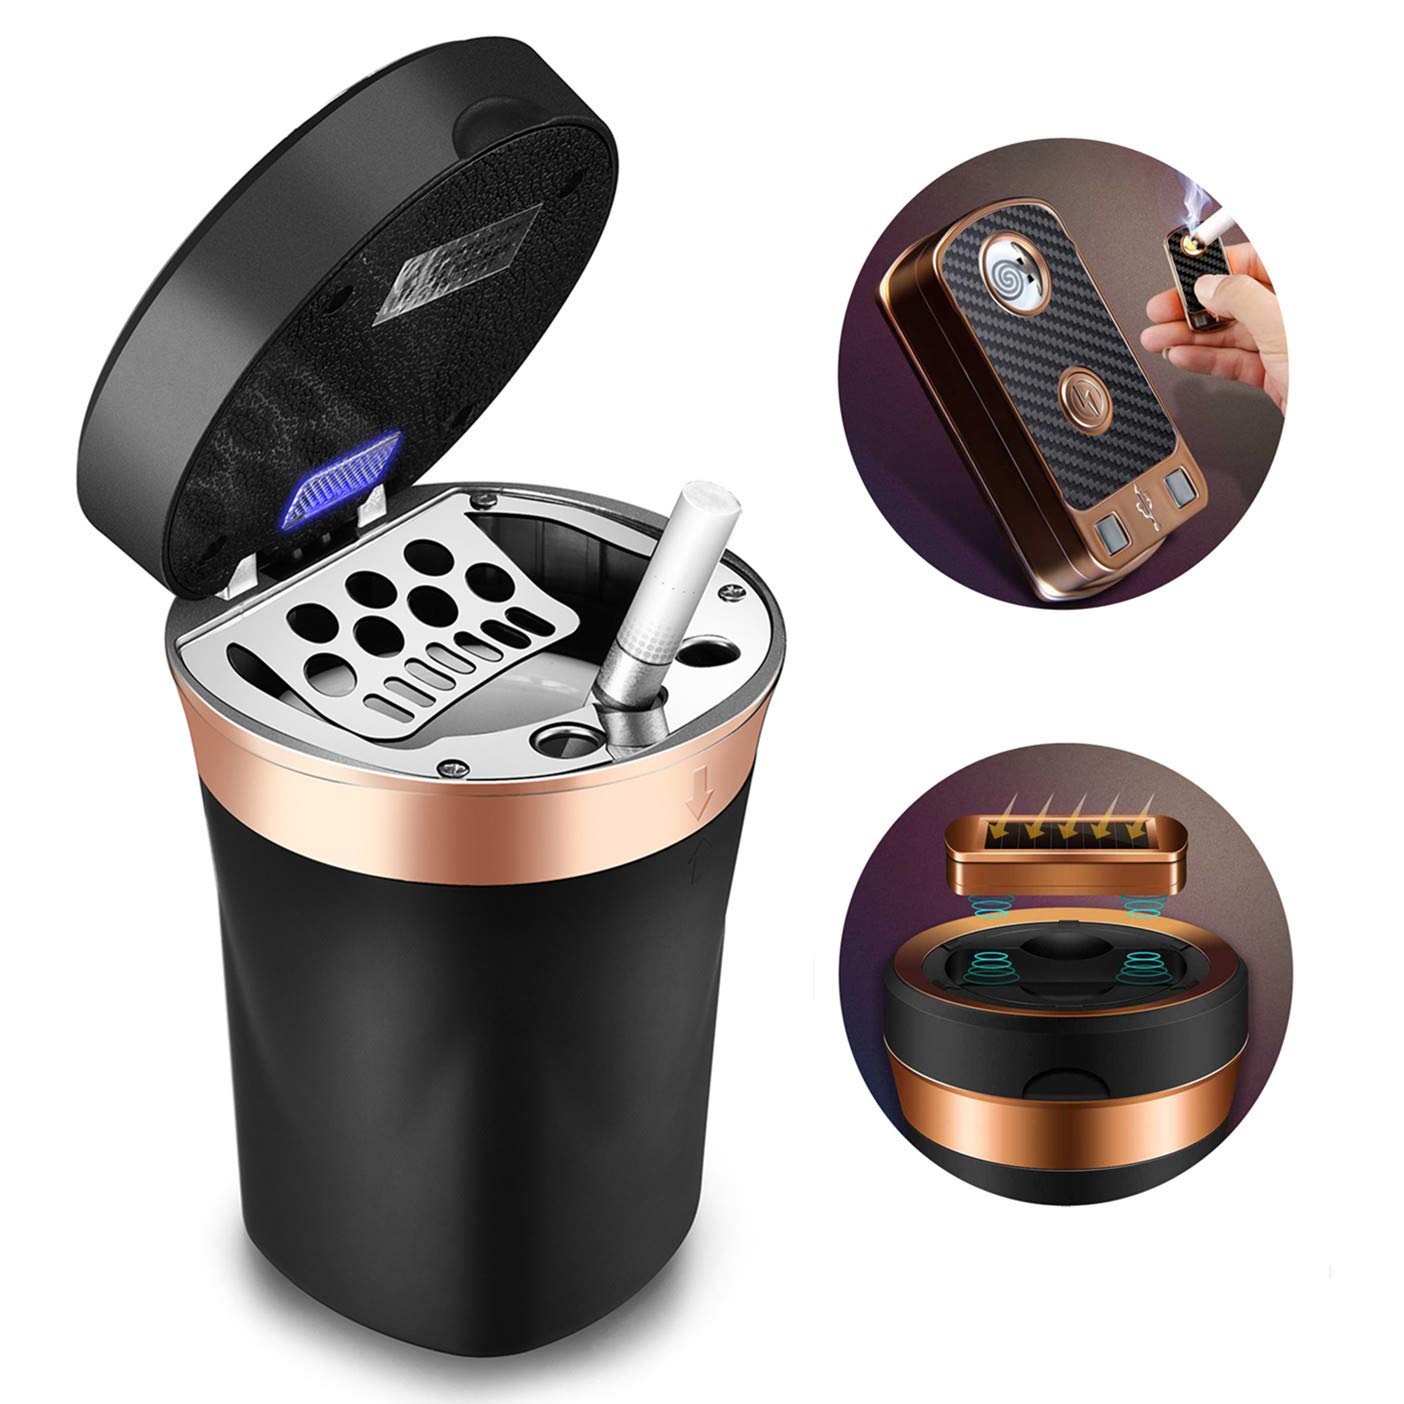 Up Detachable Stainless Cup Body with 1 Pcs Car Cup Holder MOSA STORE Car Ashtray